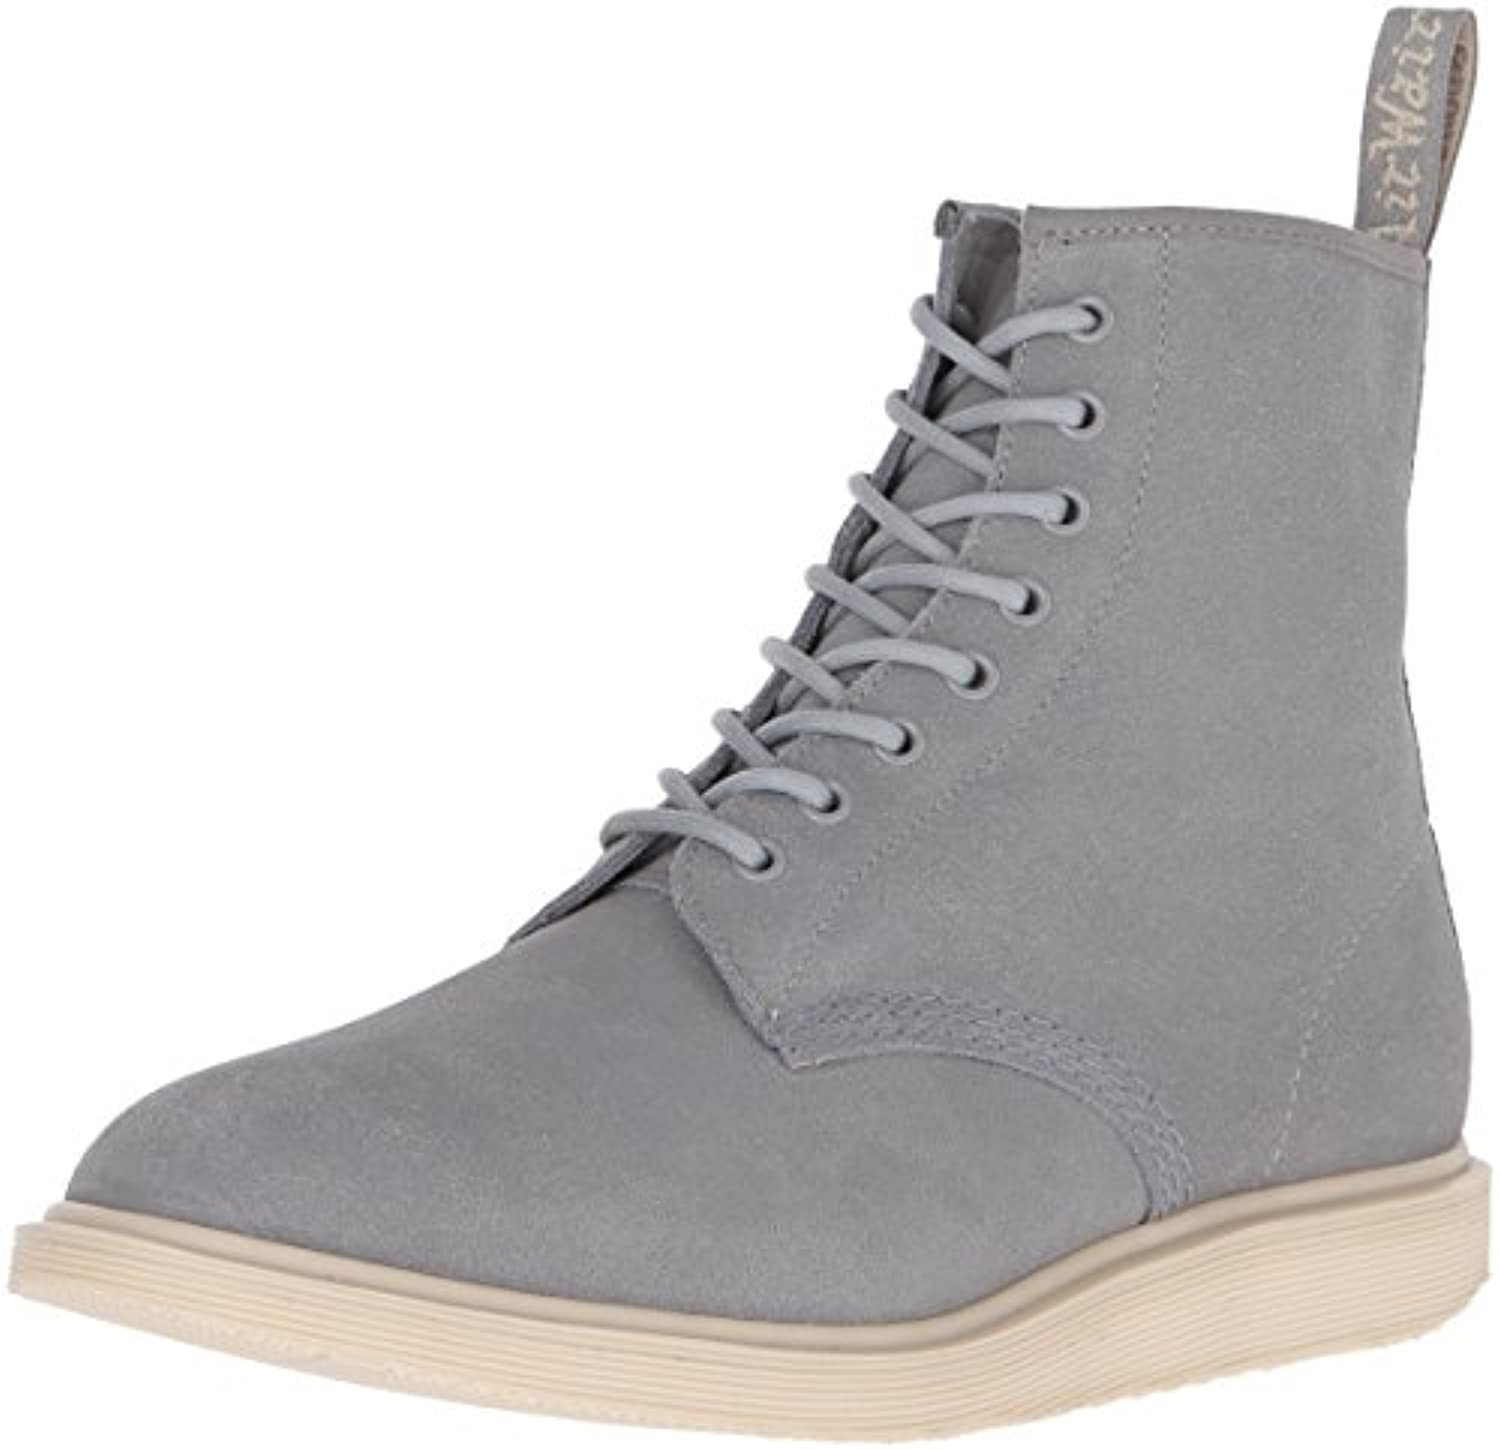 Dr. Martens Men's Whiton Hi Suede Waterproof Chukka Boot